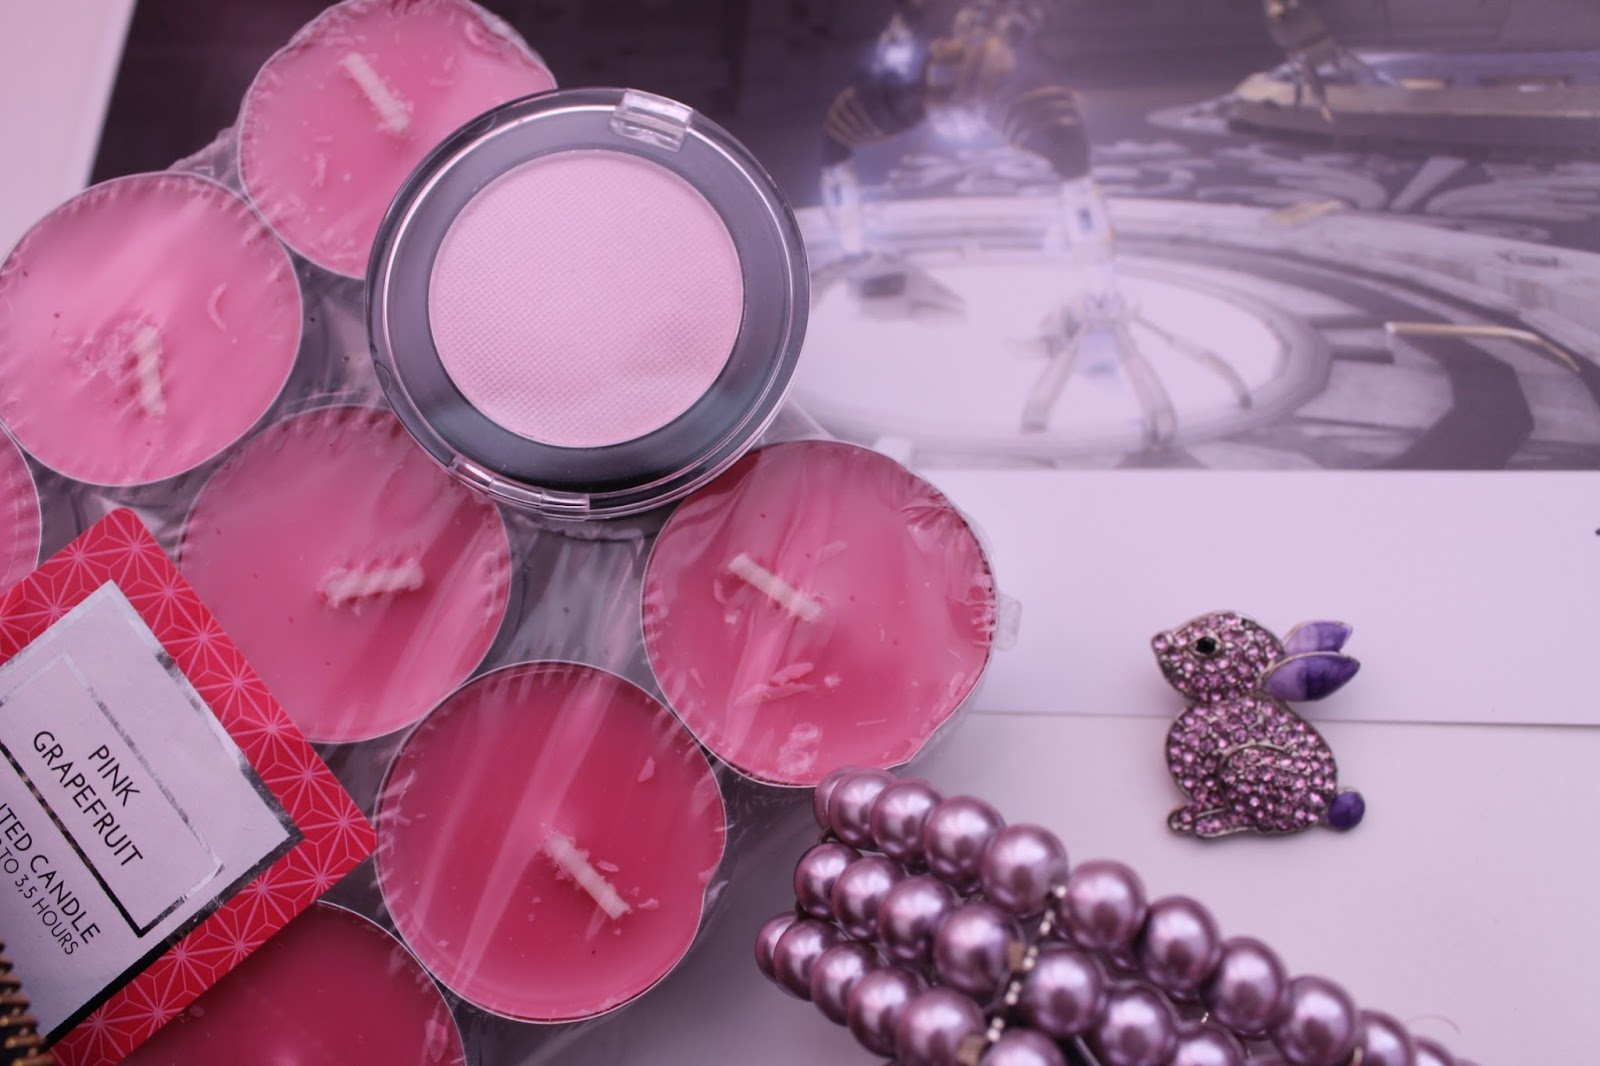 Goodies Pink Eyeshadow & Candles